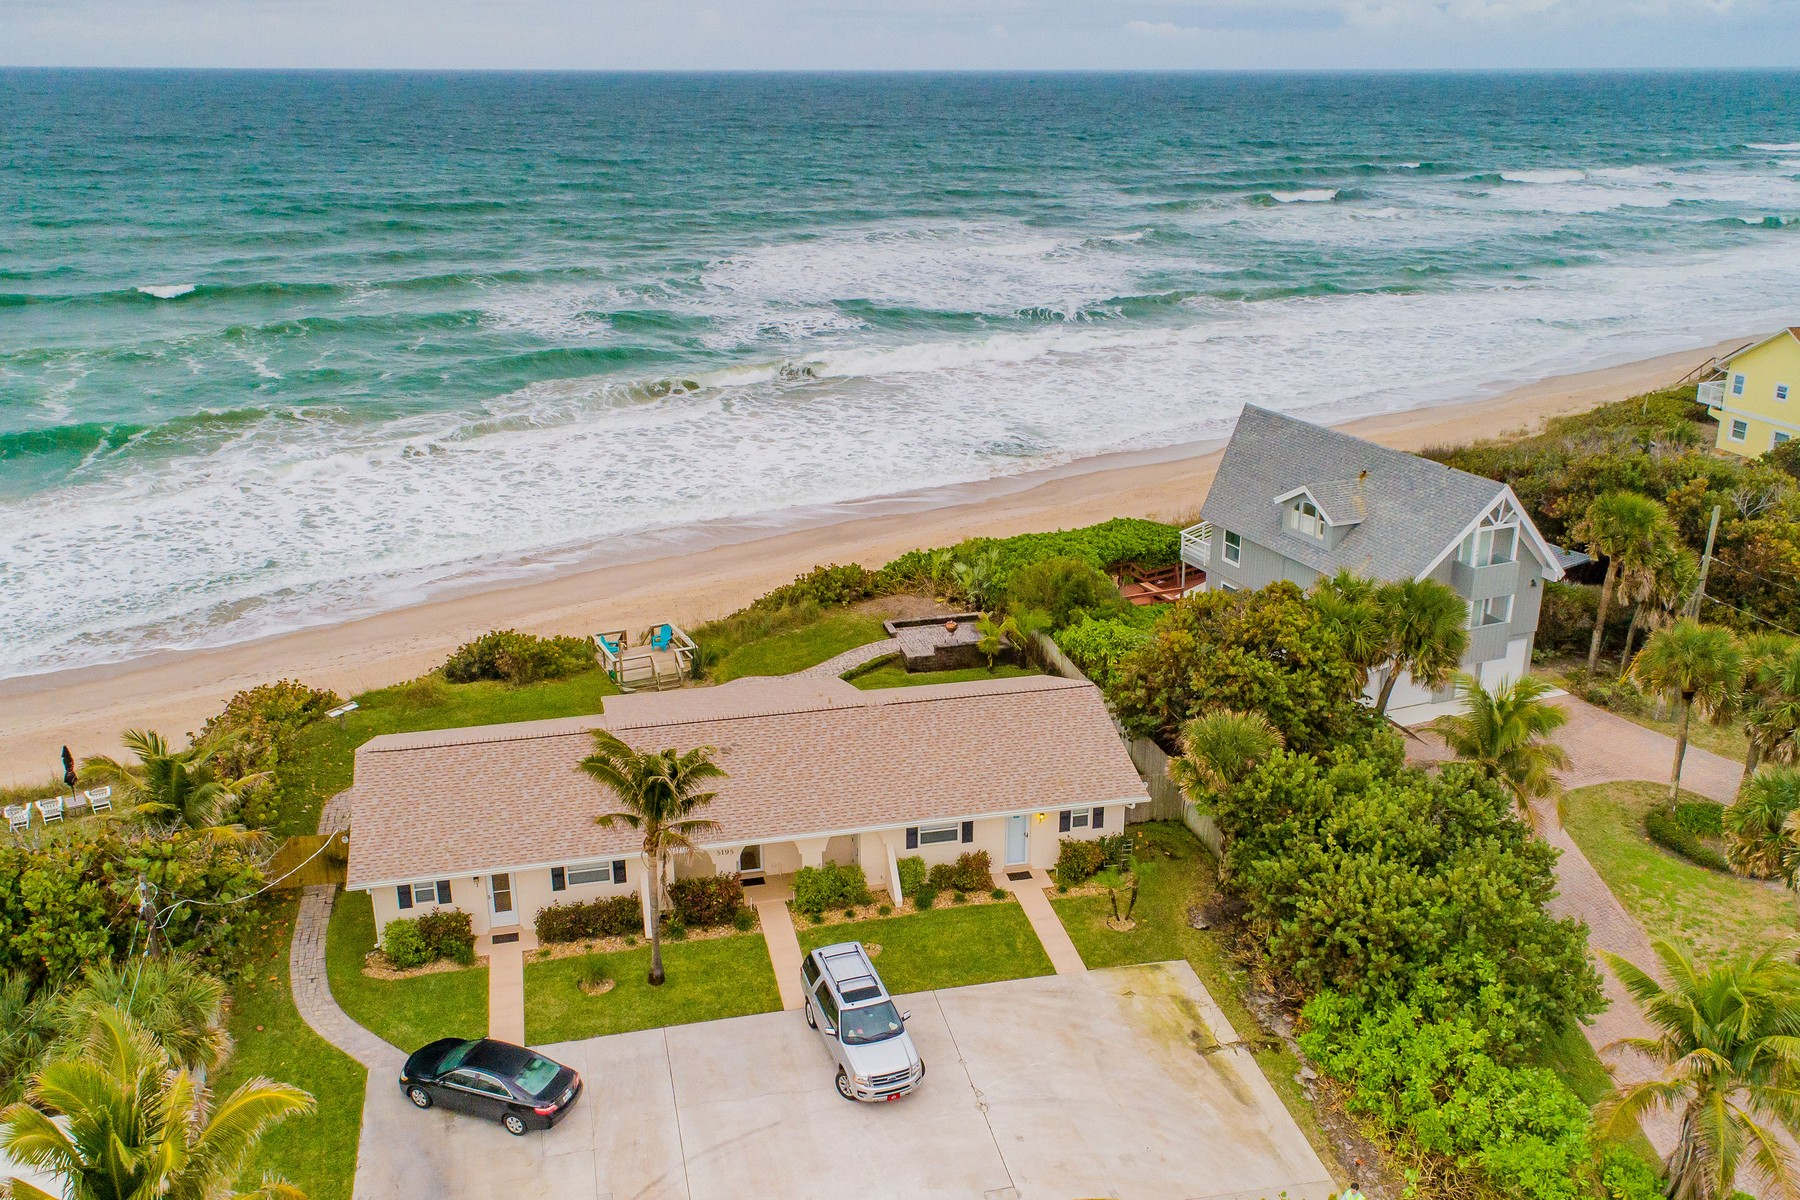 Multi-Family Homes for Active at Serenity Oceanfront Beach Resort 5195 S Highway A1A Melbourne Beach, Florida 32951 United States